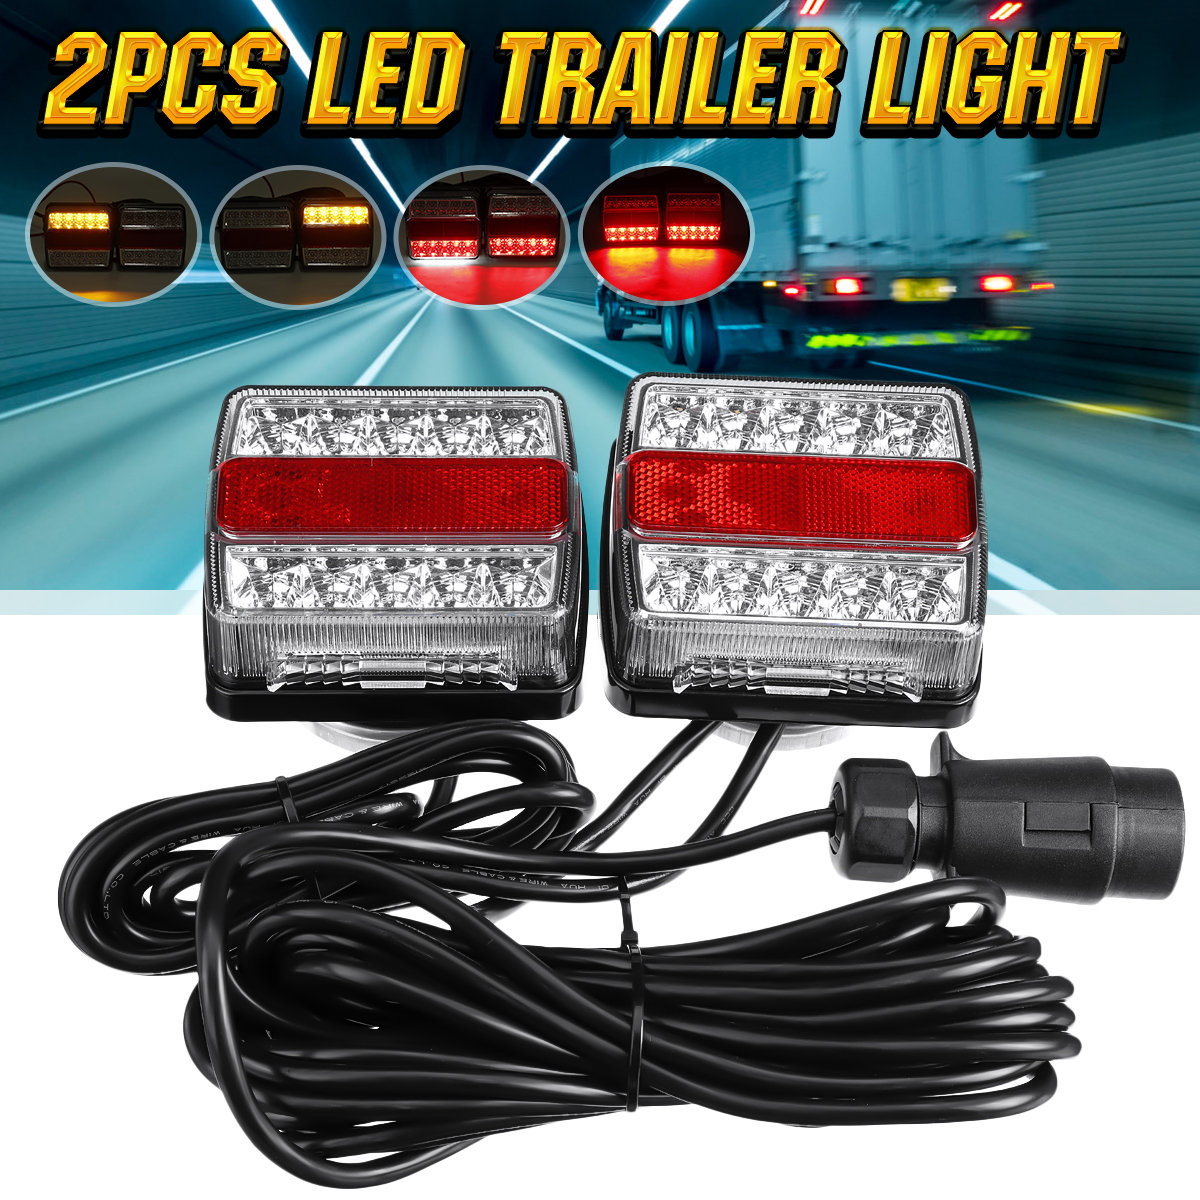 2X 12V 5 Functions 30 LED Trailer Tail Towing Light Rear Indicator Brake Reflector Number Plate Powerful Magnet Easy Fit